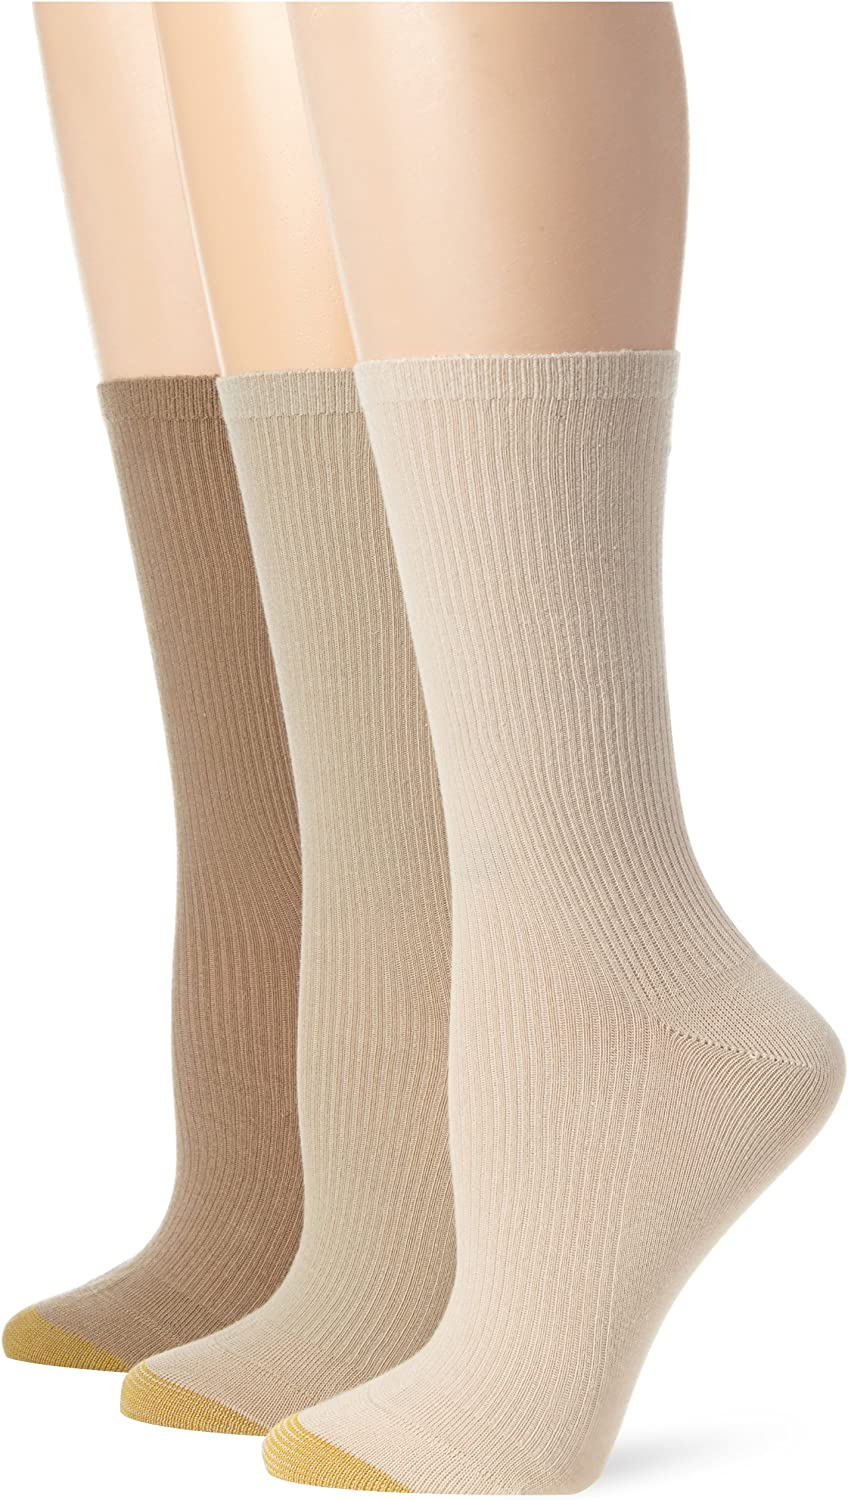 Gold Toe Womens Premium Cotton Non Binding Crew Sock Pack of 3